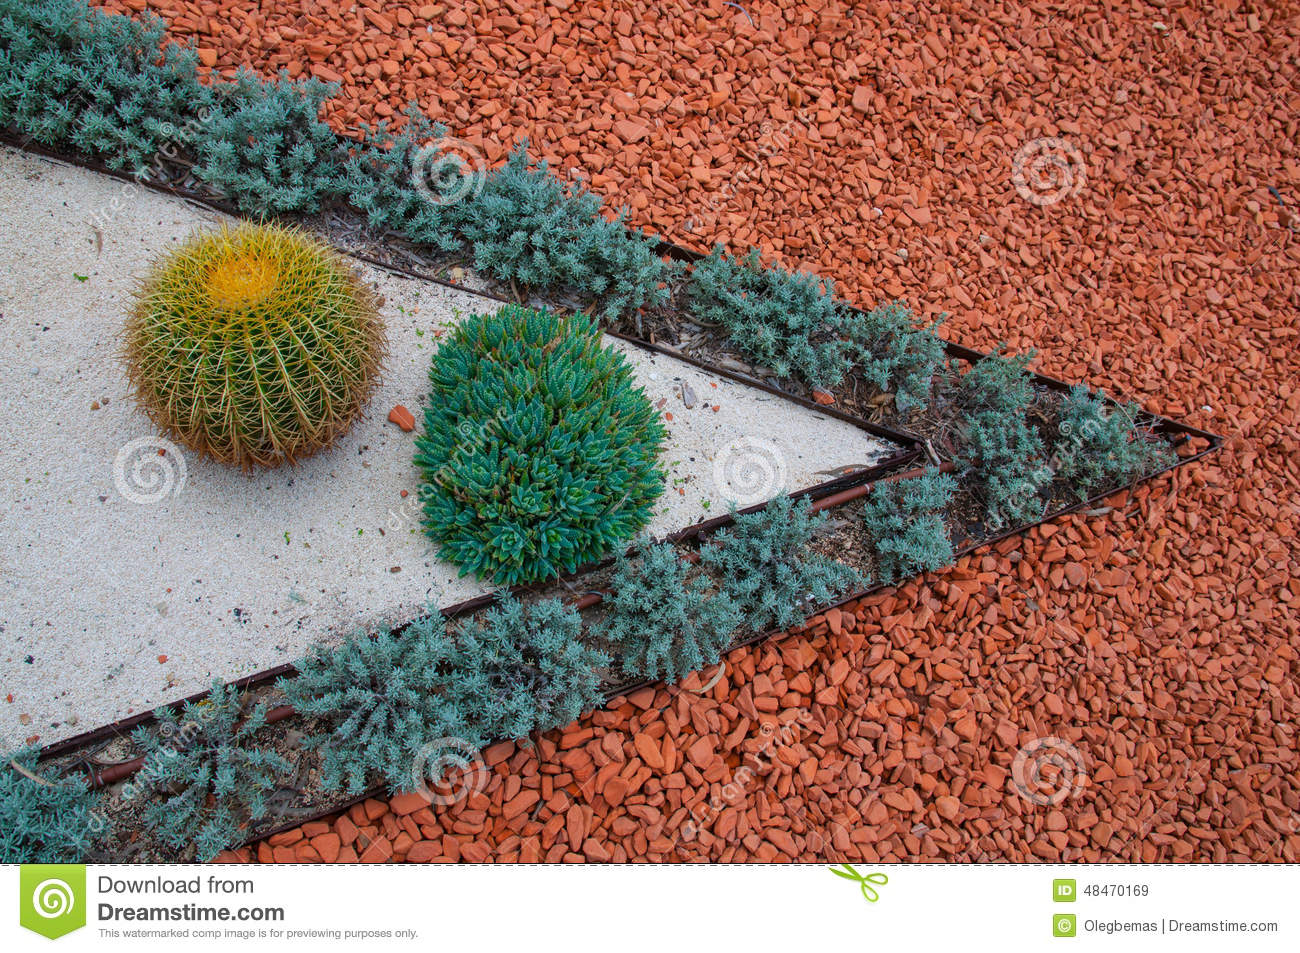 Landscape Gravel Colors : Types of landscaping and decorations garden paths stock